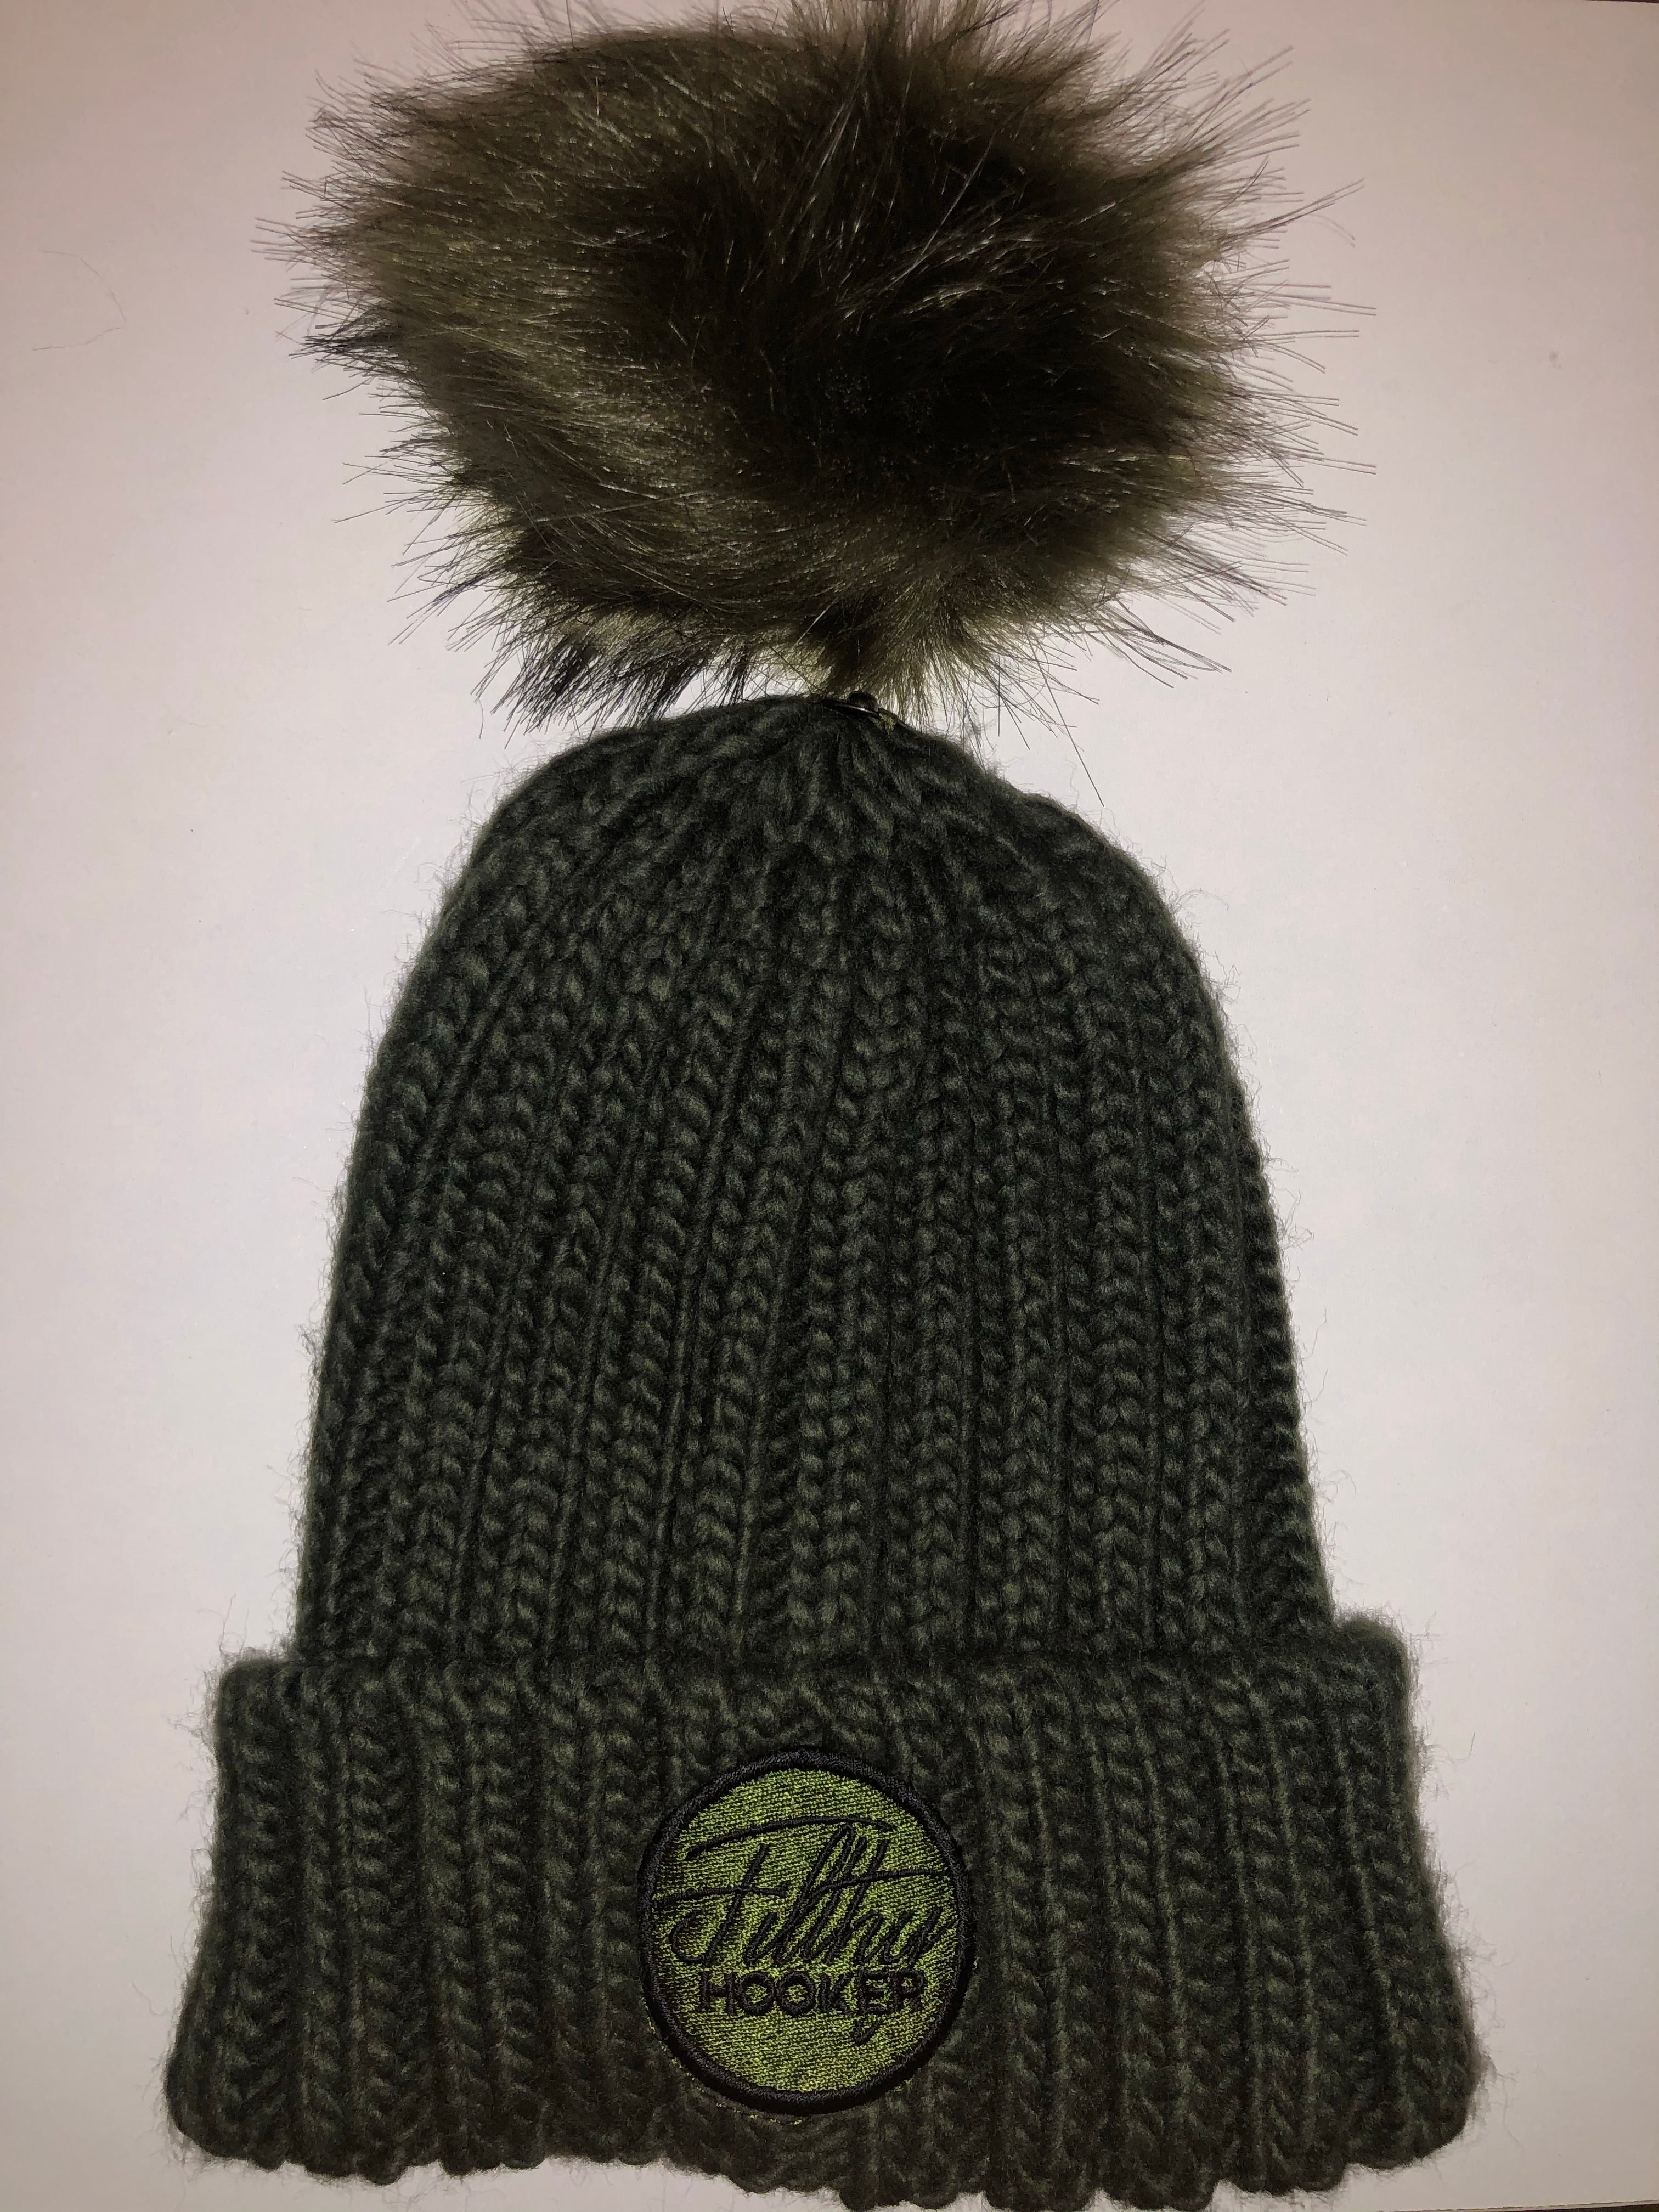 Pink & Olive ribbed beanies with detachable faux fur bobble so you can have it with or without. Easy to detach and attach. Very very warm. Perfect for those cold sessions on the bank.